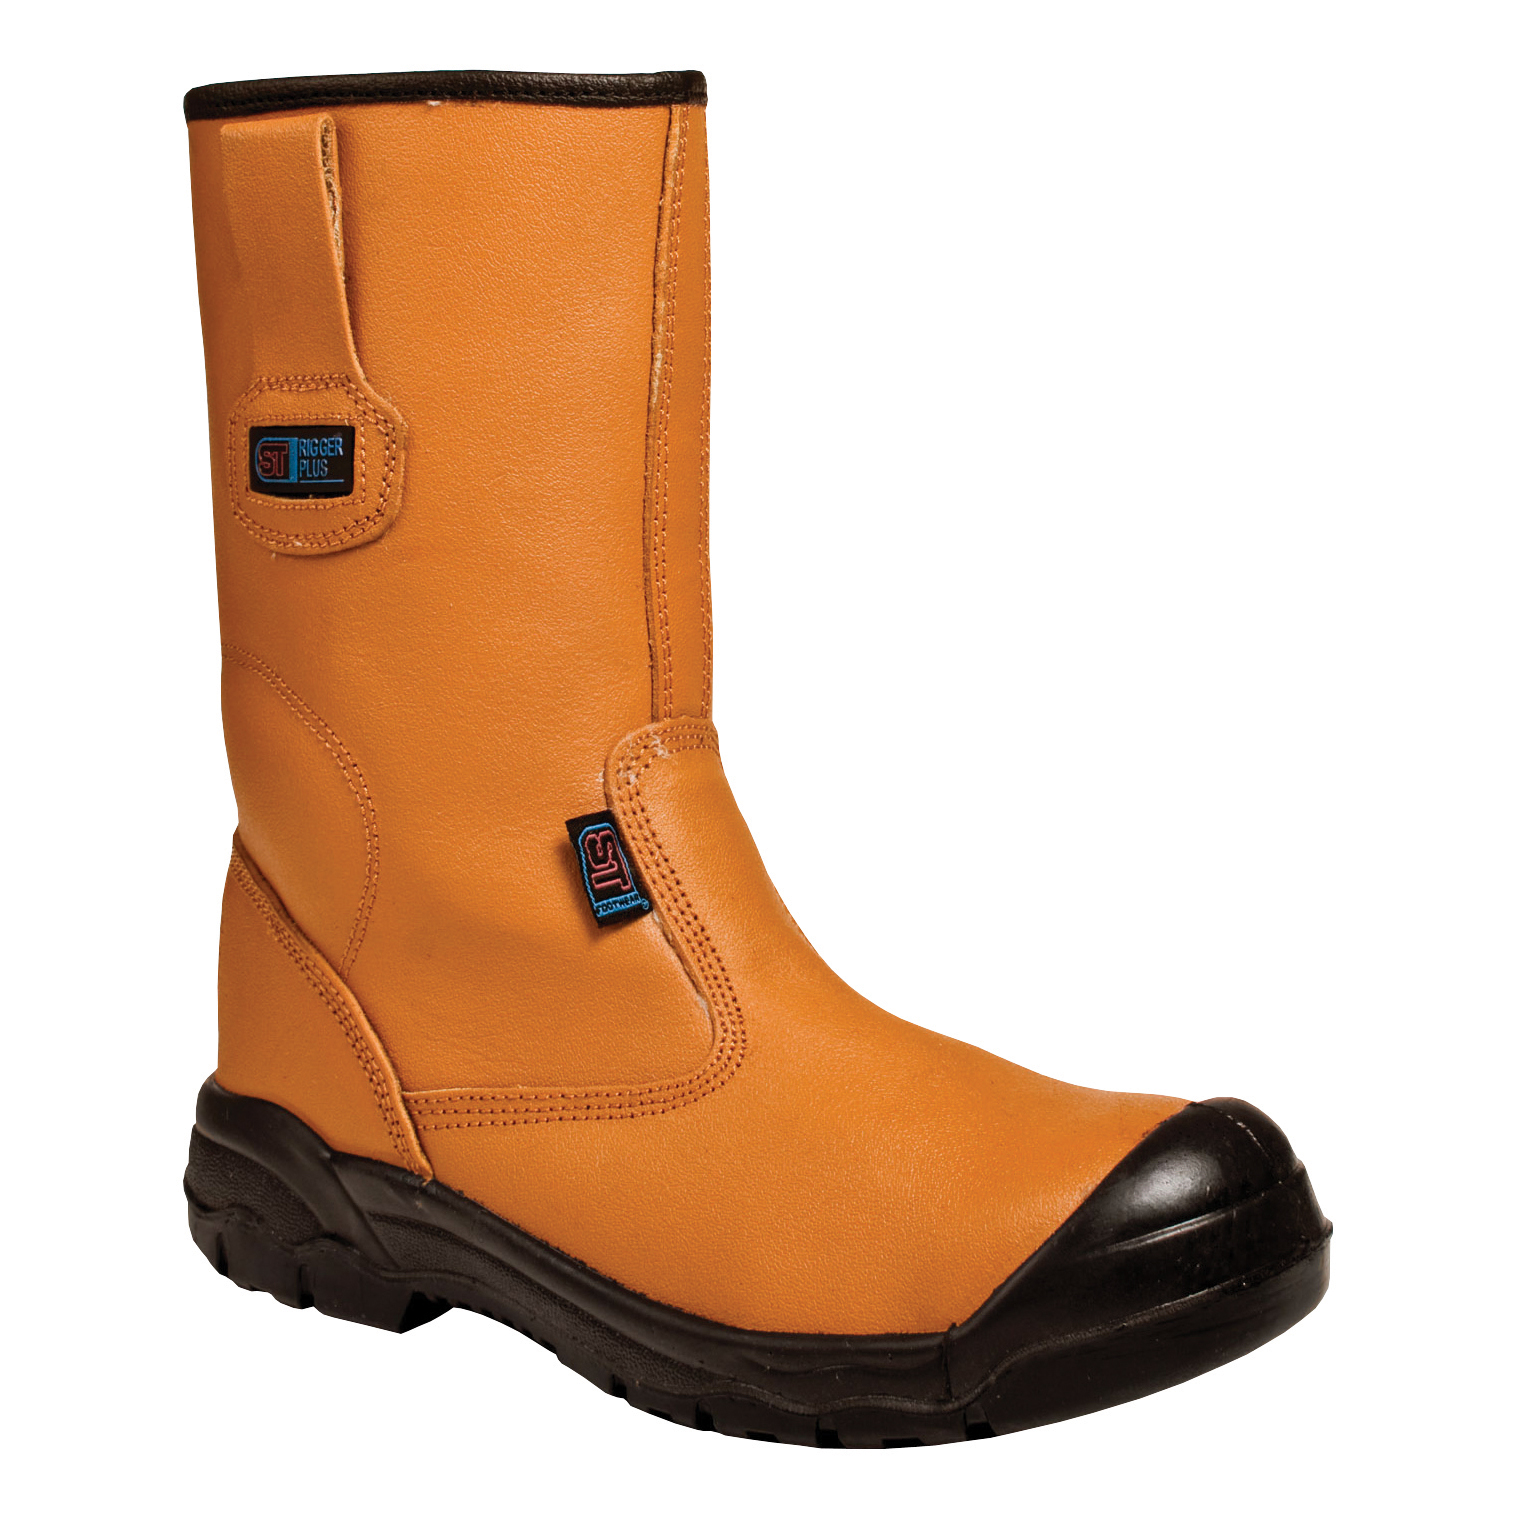 Supertouch Rigger Boot Plus Leather with Rubber Toecap Size 7 Tan Ref 90512 *Approx 3 Day Leadtime*